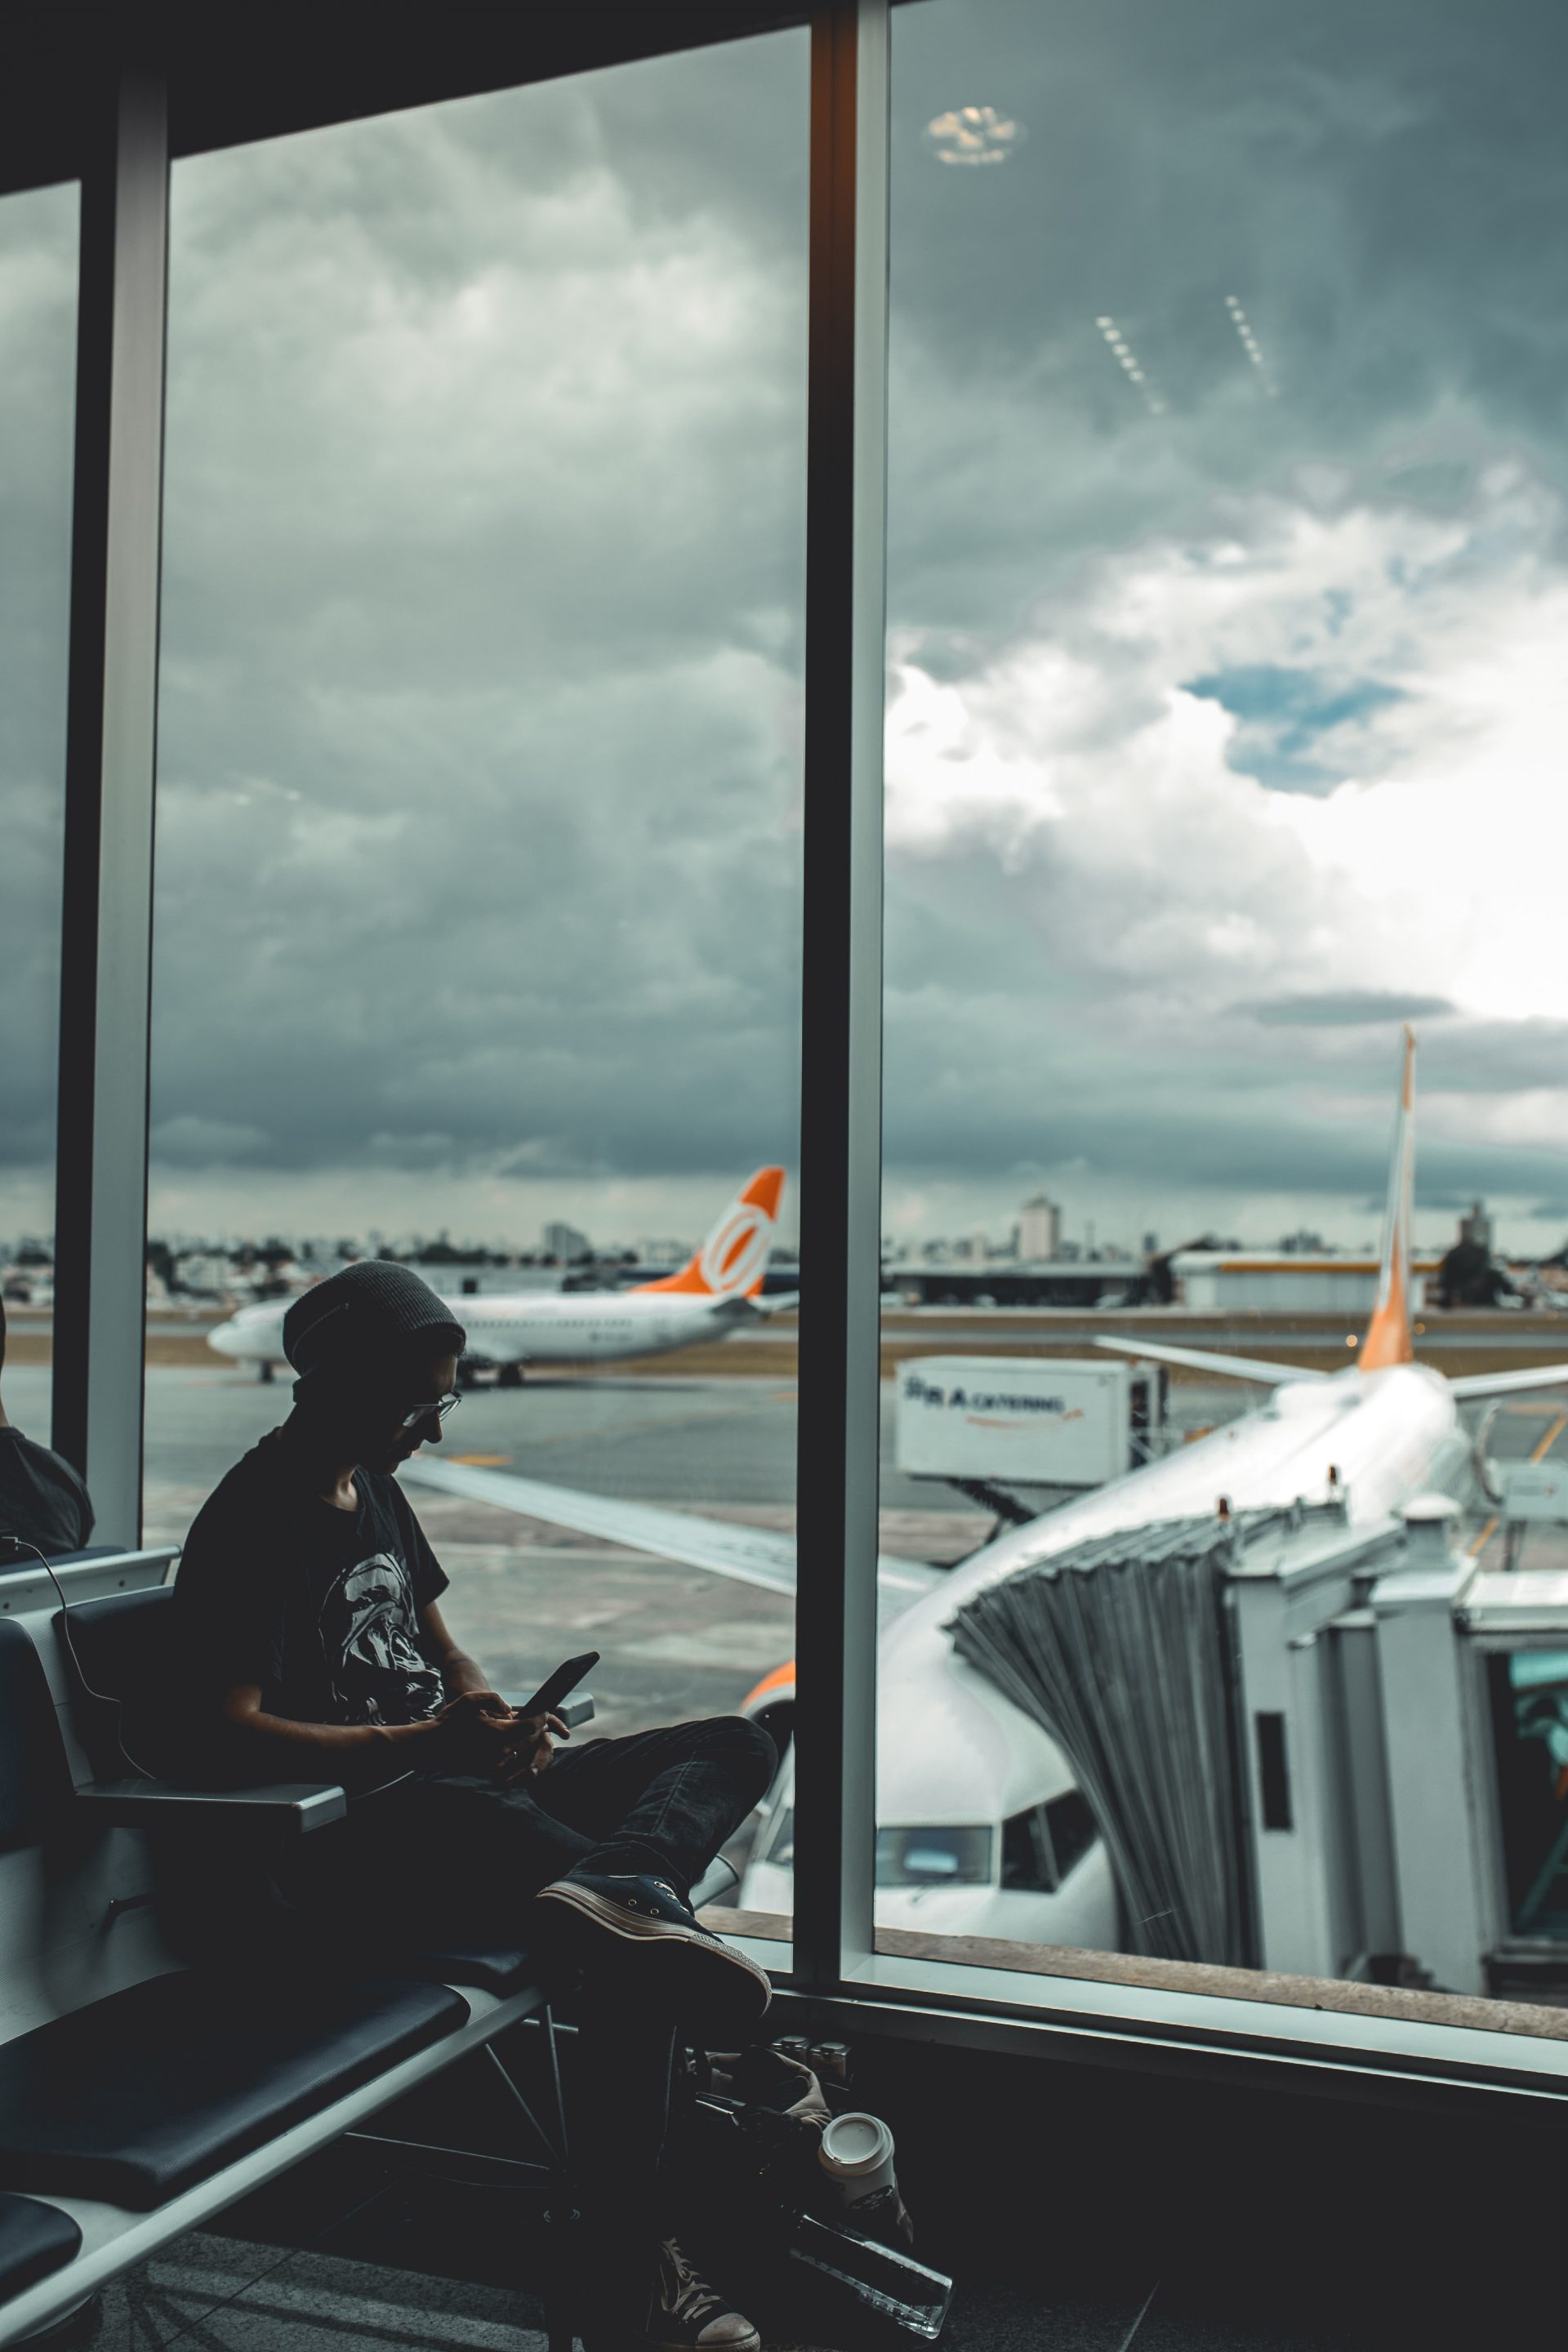 Person sitting at airport window with delayed flight in the background